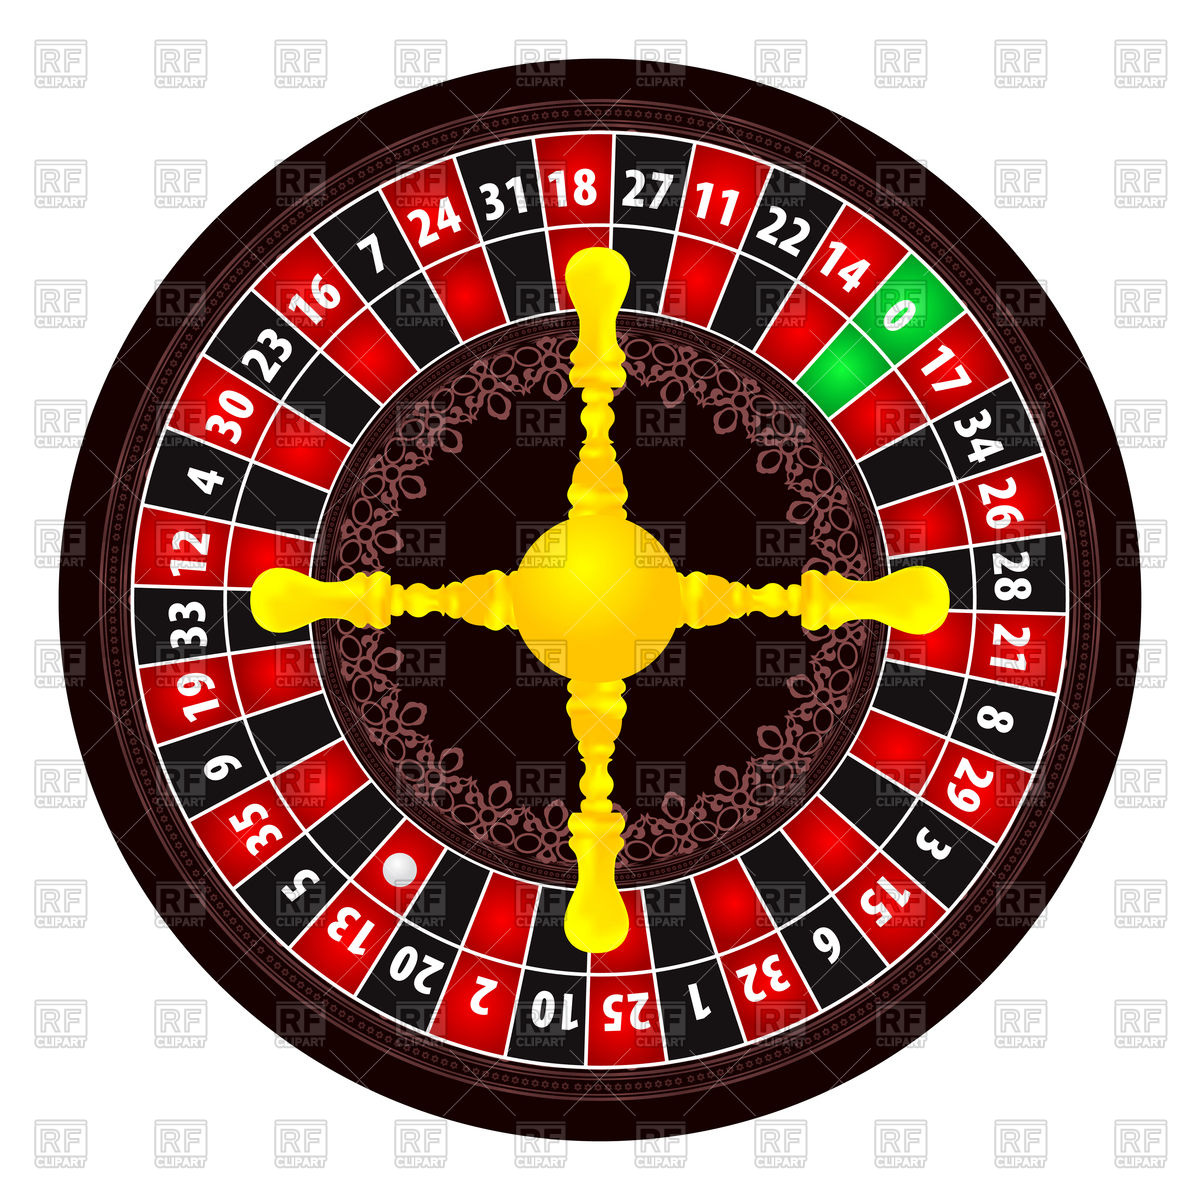 Casino roulette top view Vector Image #75655.